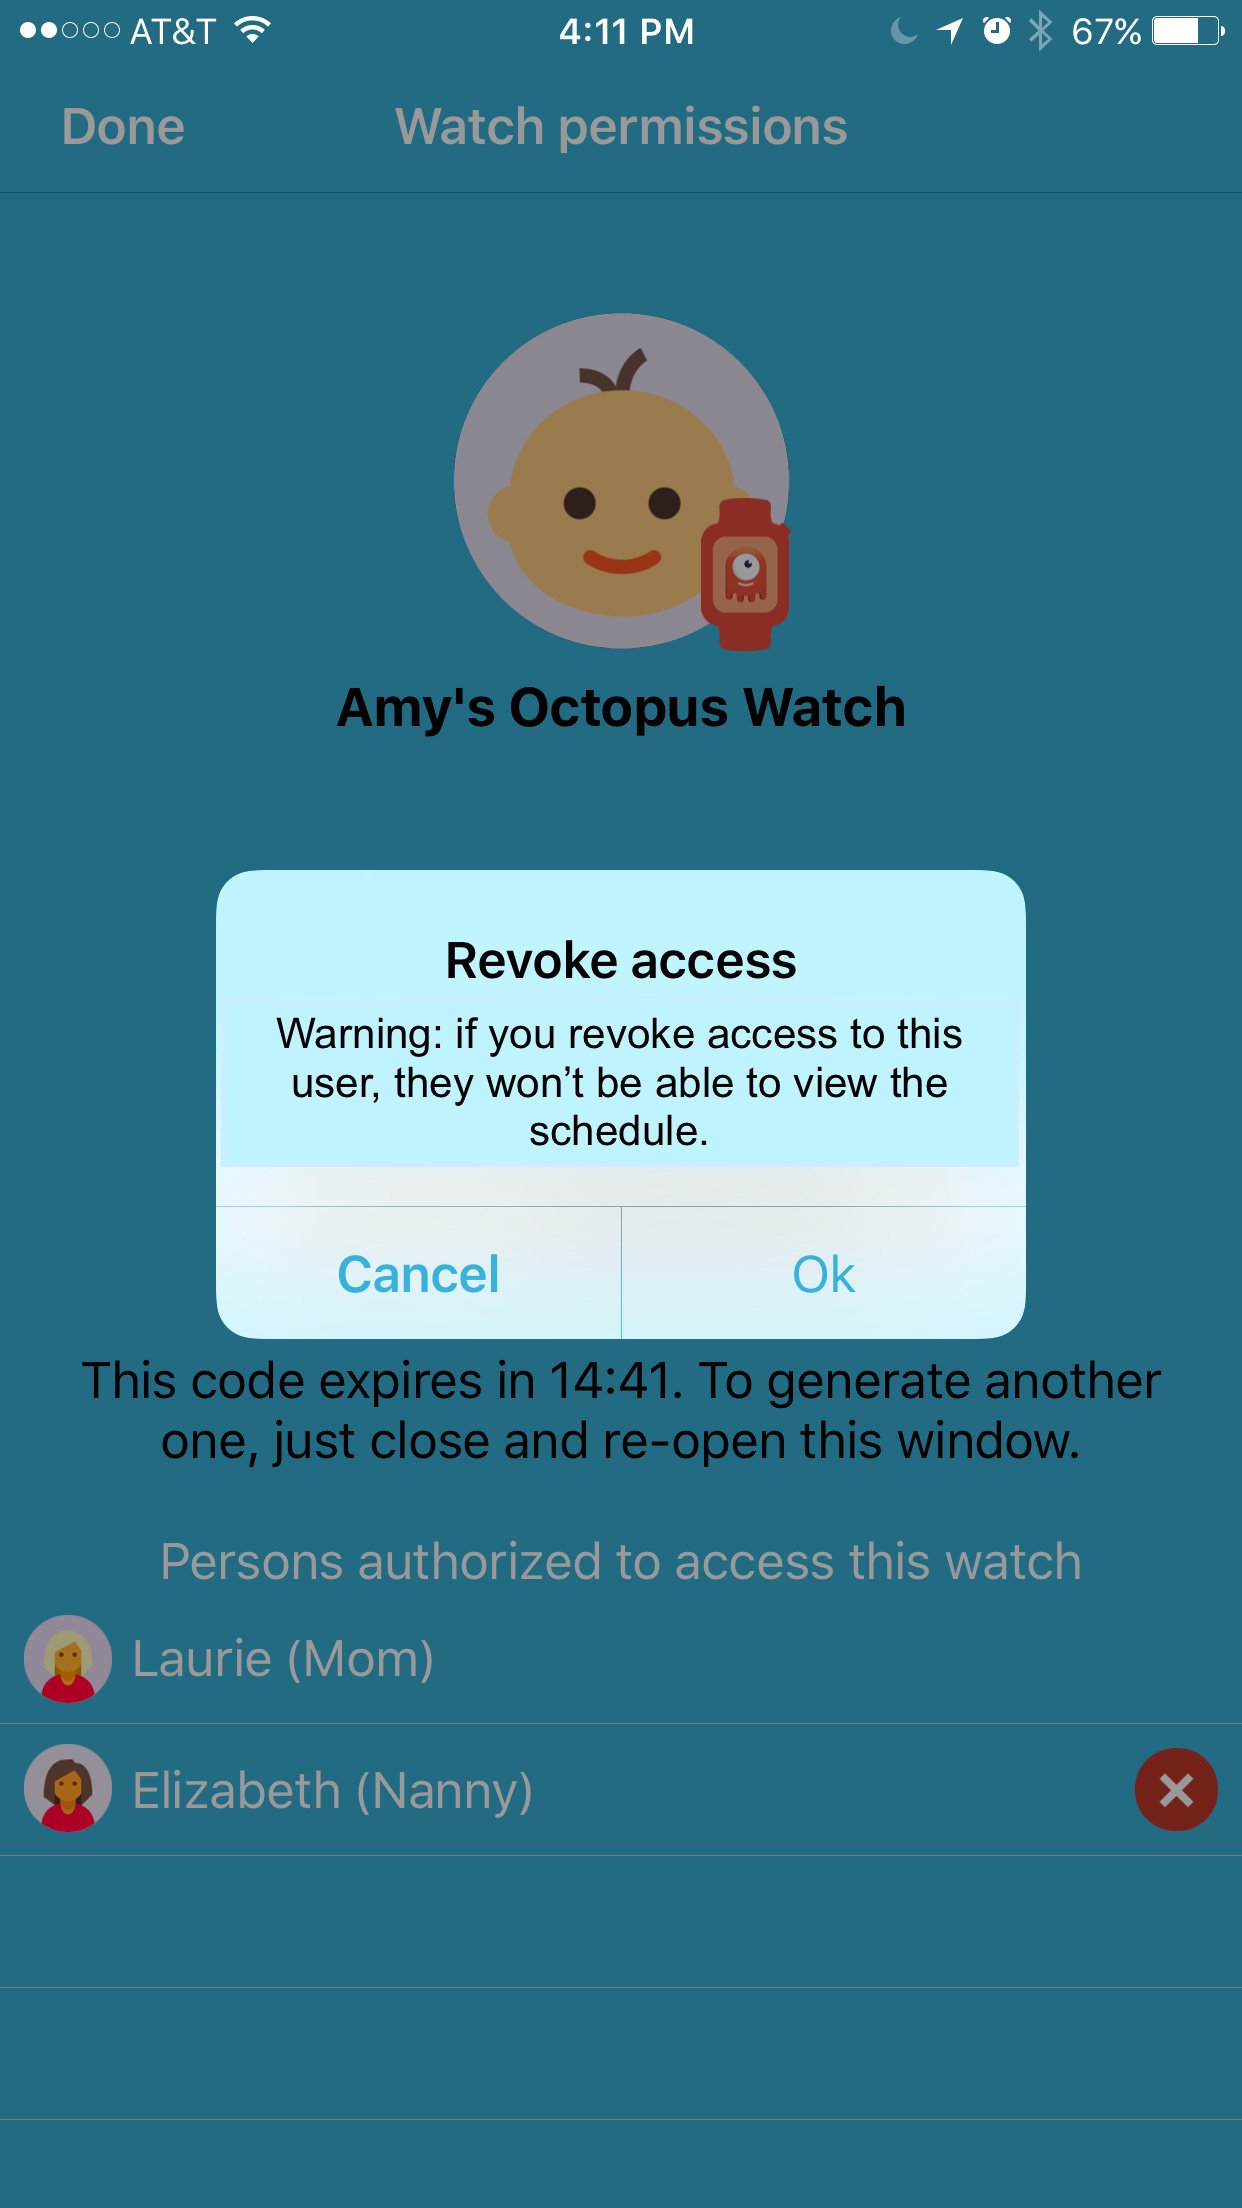 Octopus watch app: confirm the revocation access